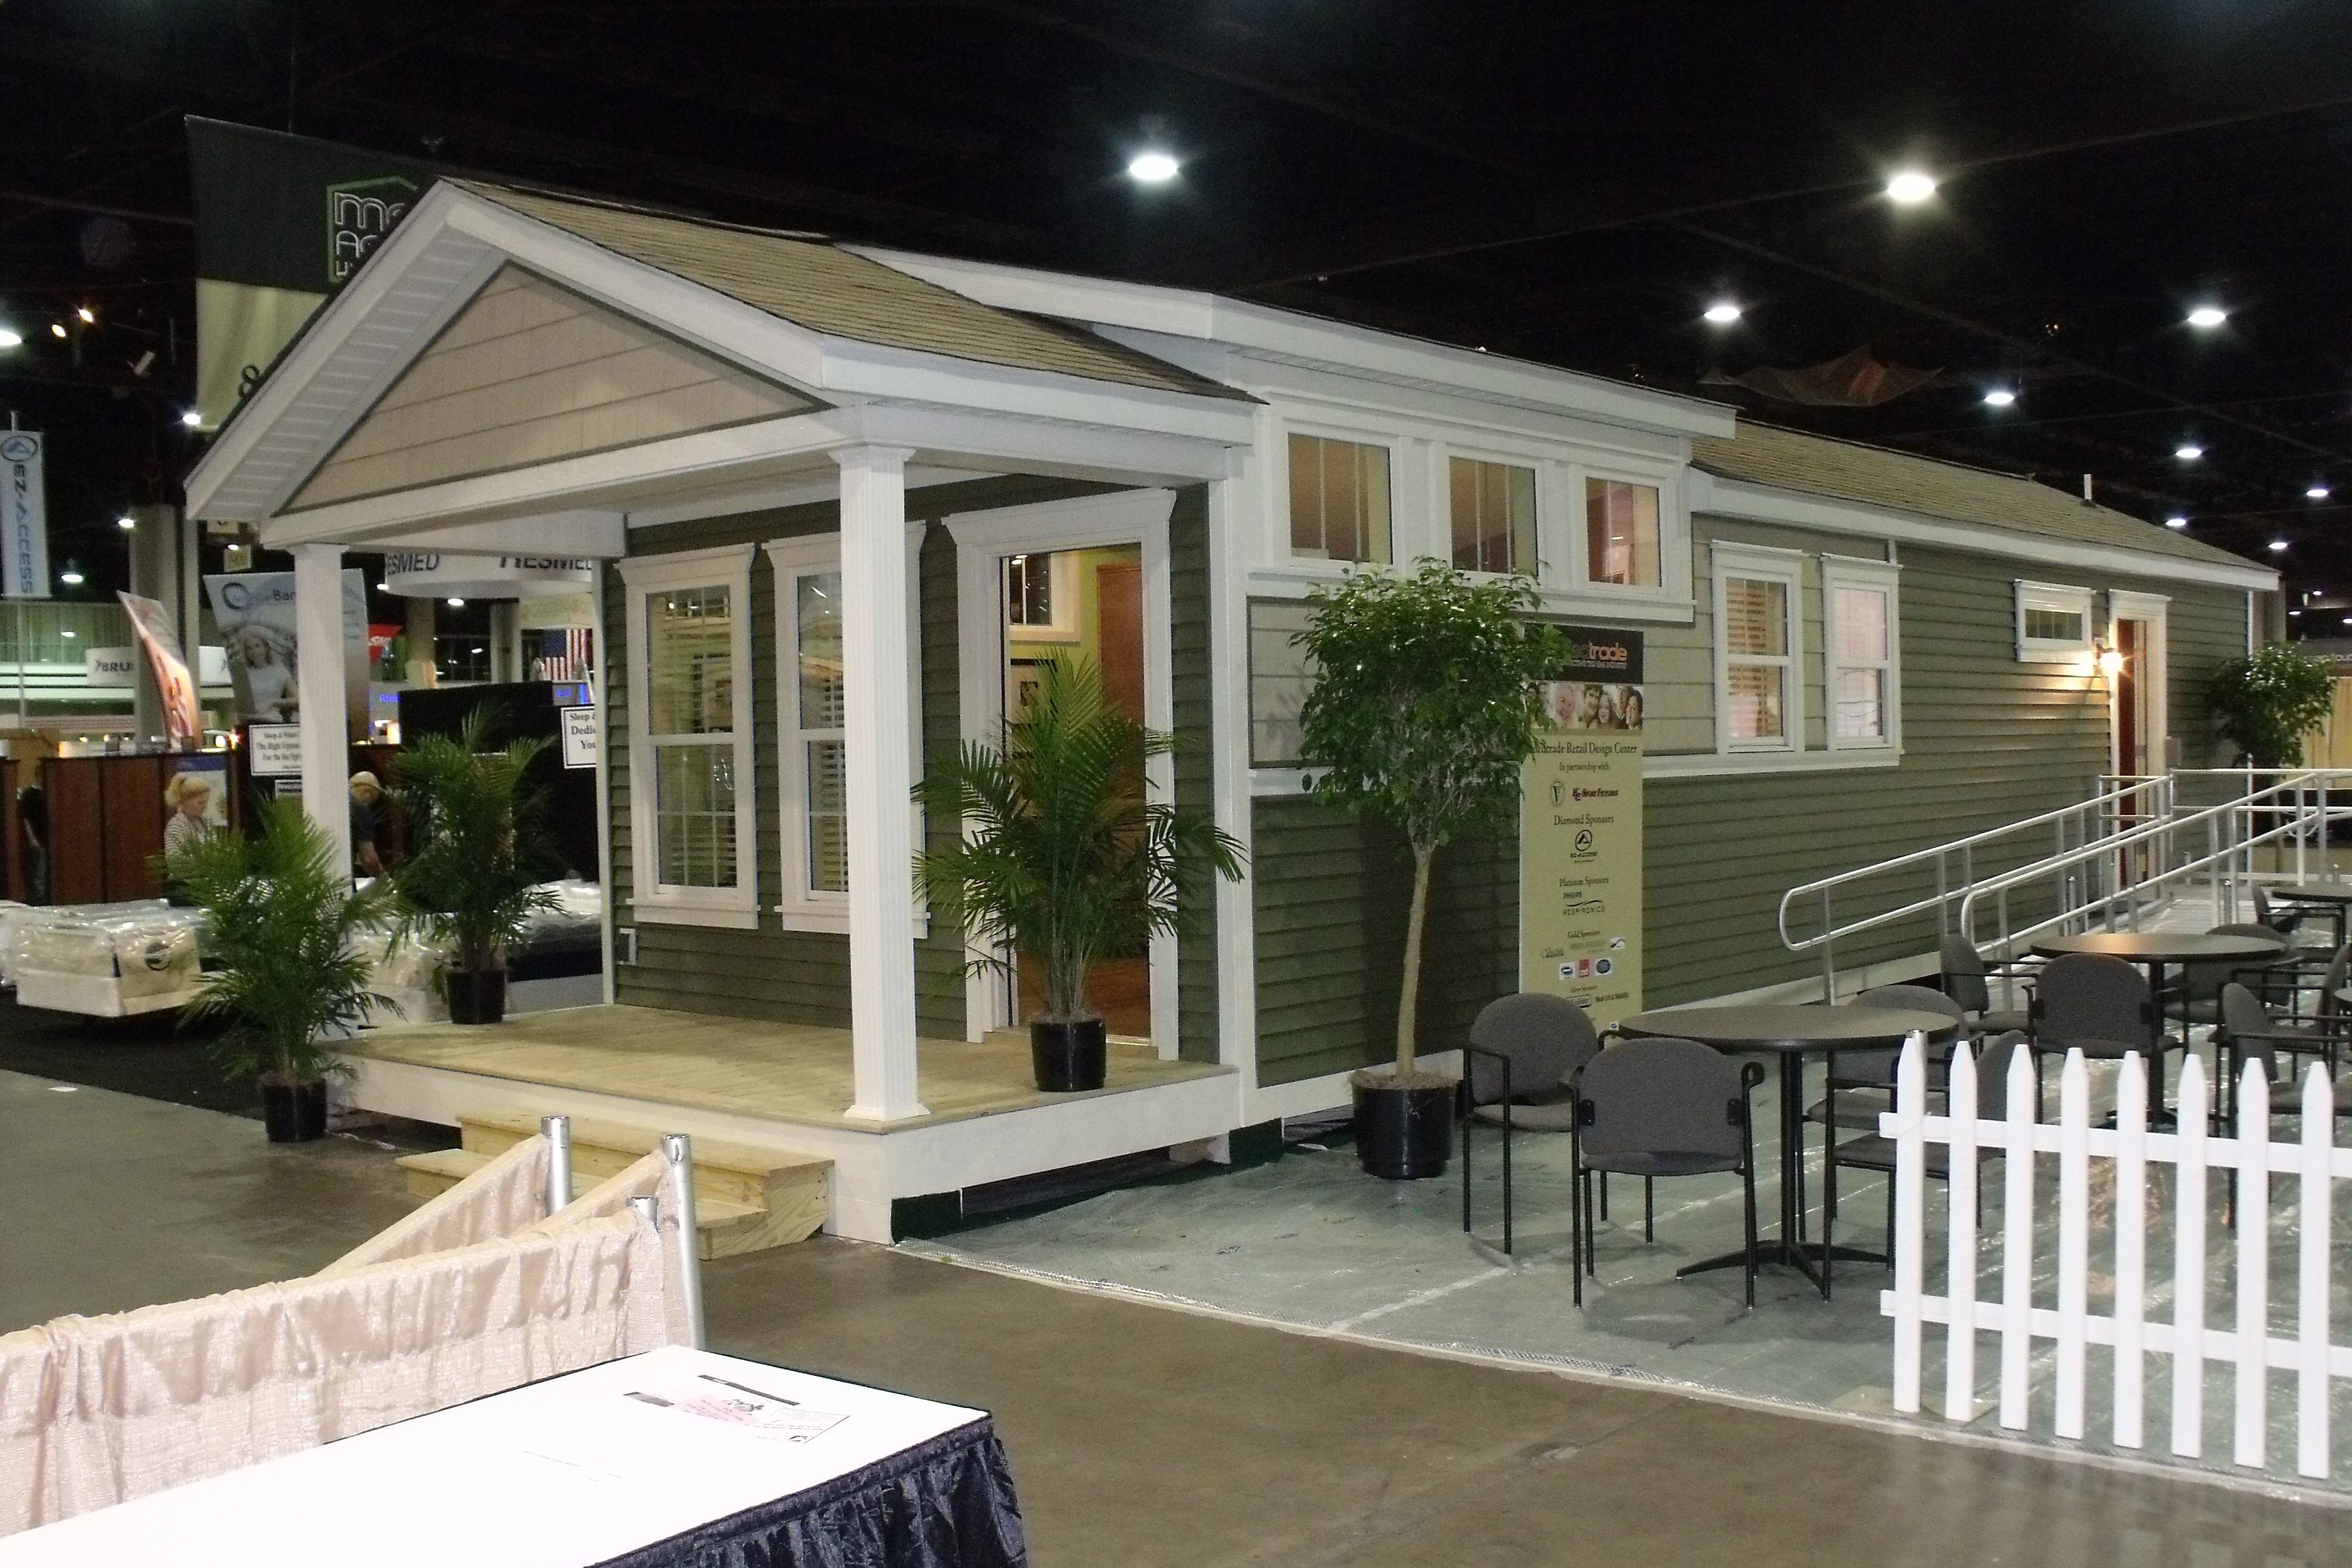 Nationwide homes unveils custom modular granny flats for Prefab granny unit california